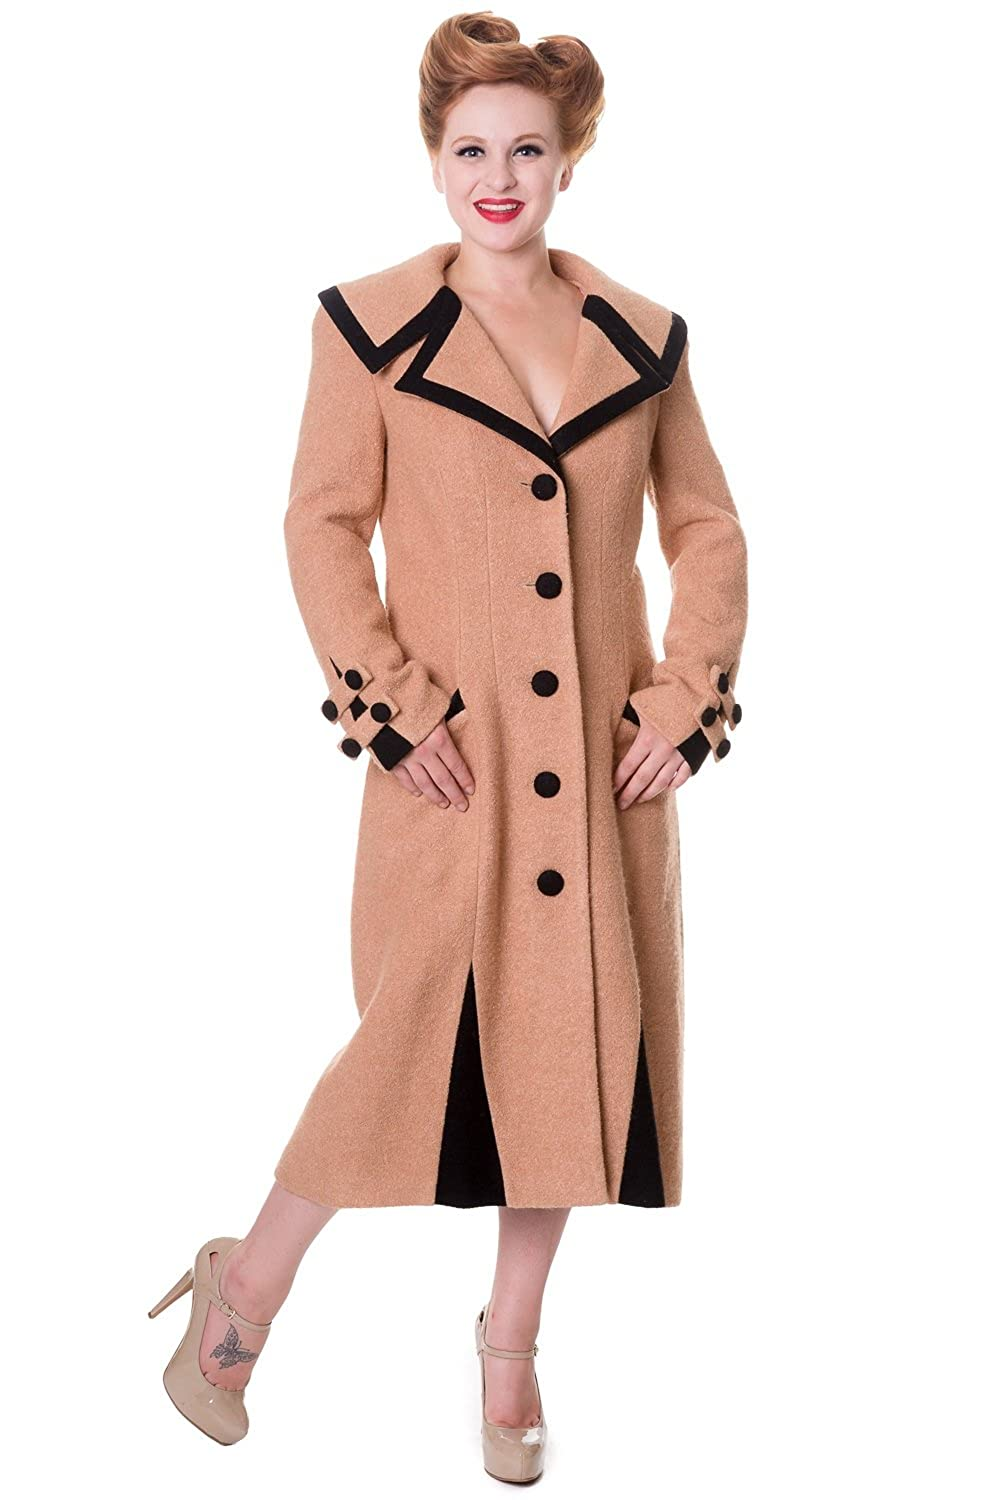 1930s Style Coats, Jackets | Art Deco Outerwear Banned Long Vintage Button Coat - Black or Camel £93.99 AT vintagedancer.com